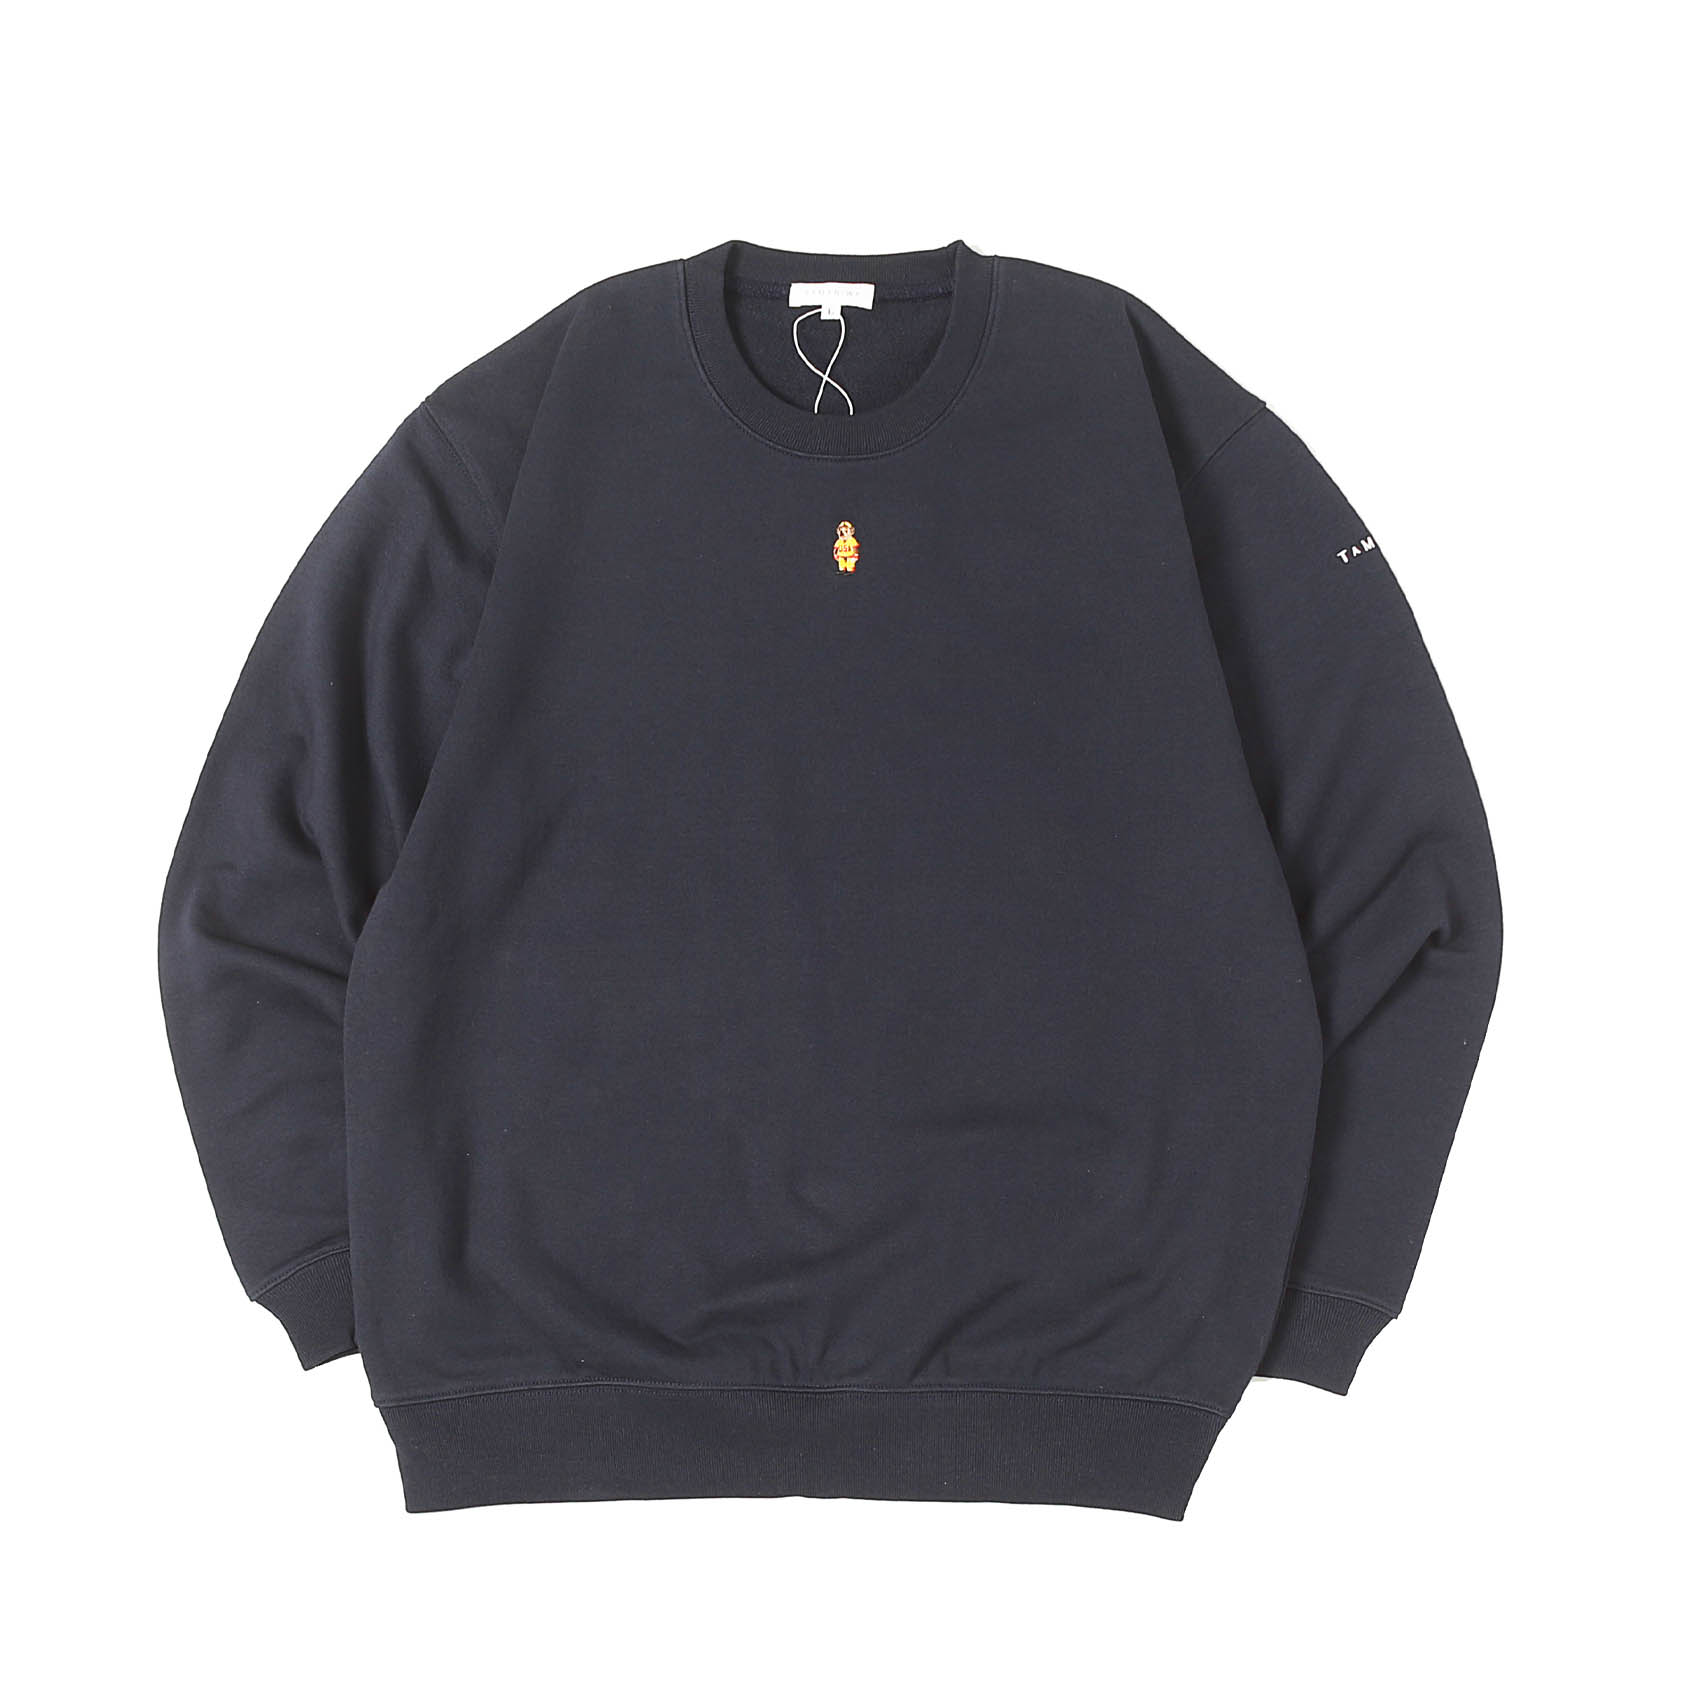 BEAR TRAINER SWEATSHIRTS - NAVY